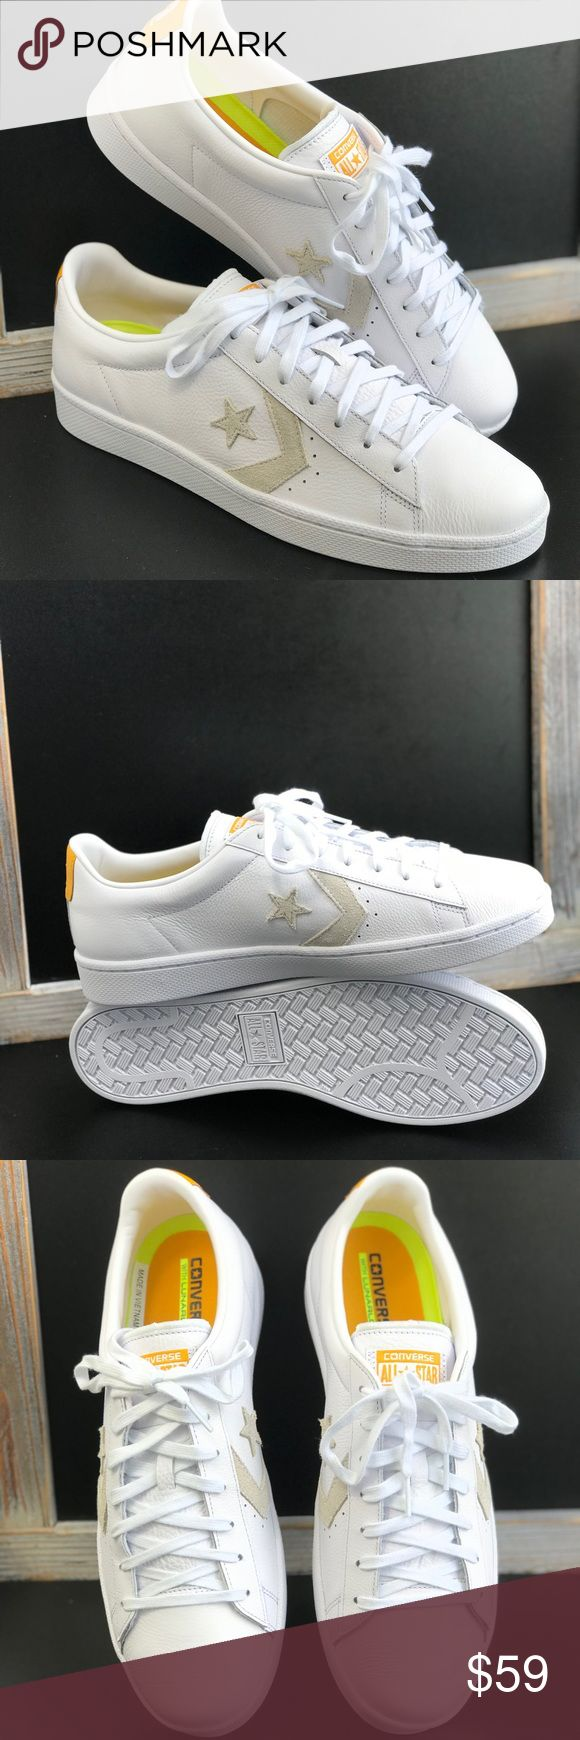 Converse Pro Leather OX White LT M AUTHENTIC Brand new with box. 💥Price is firm!💥 no trades. Size 10,5 -no lid box. Updated pro leather shape and branding.  Lunarlon sockliner for superior cushioning. Rubber outsole provides traction and durability. Runs true to size. Converse Shoes Sneakers